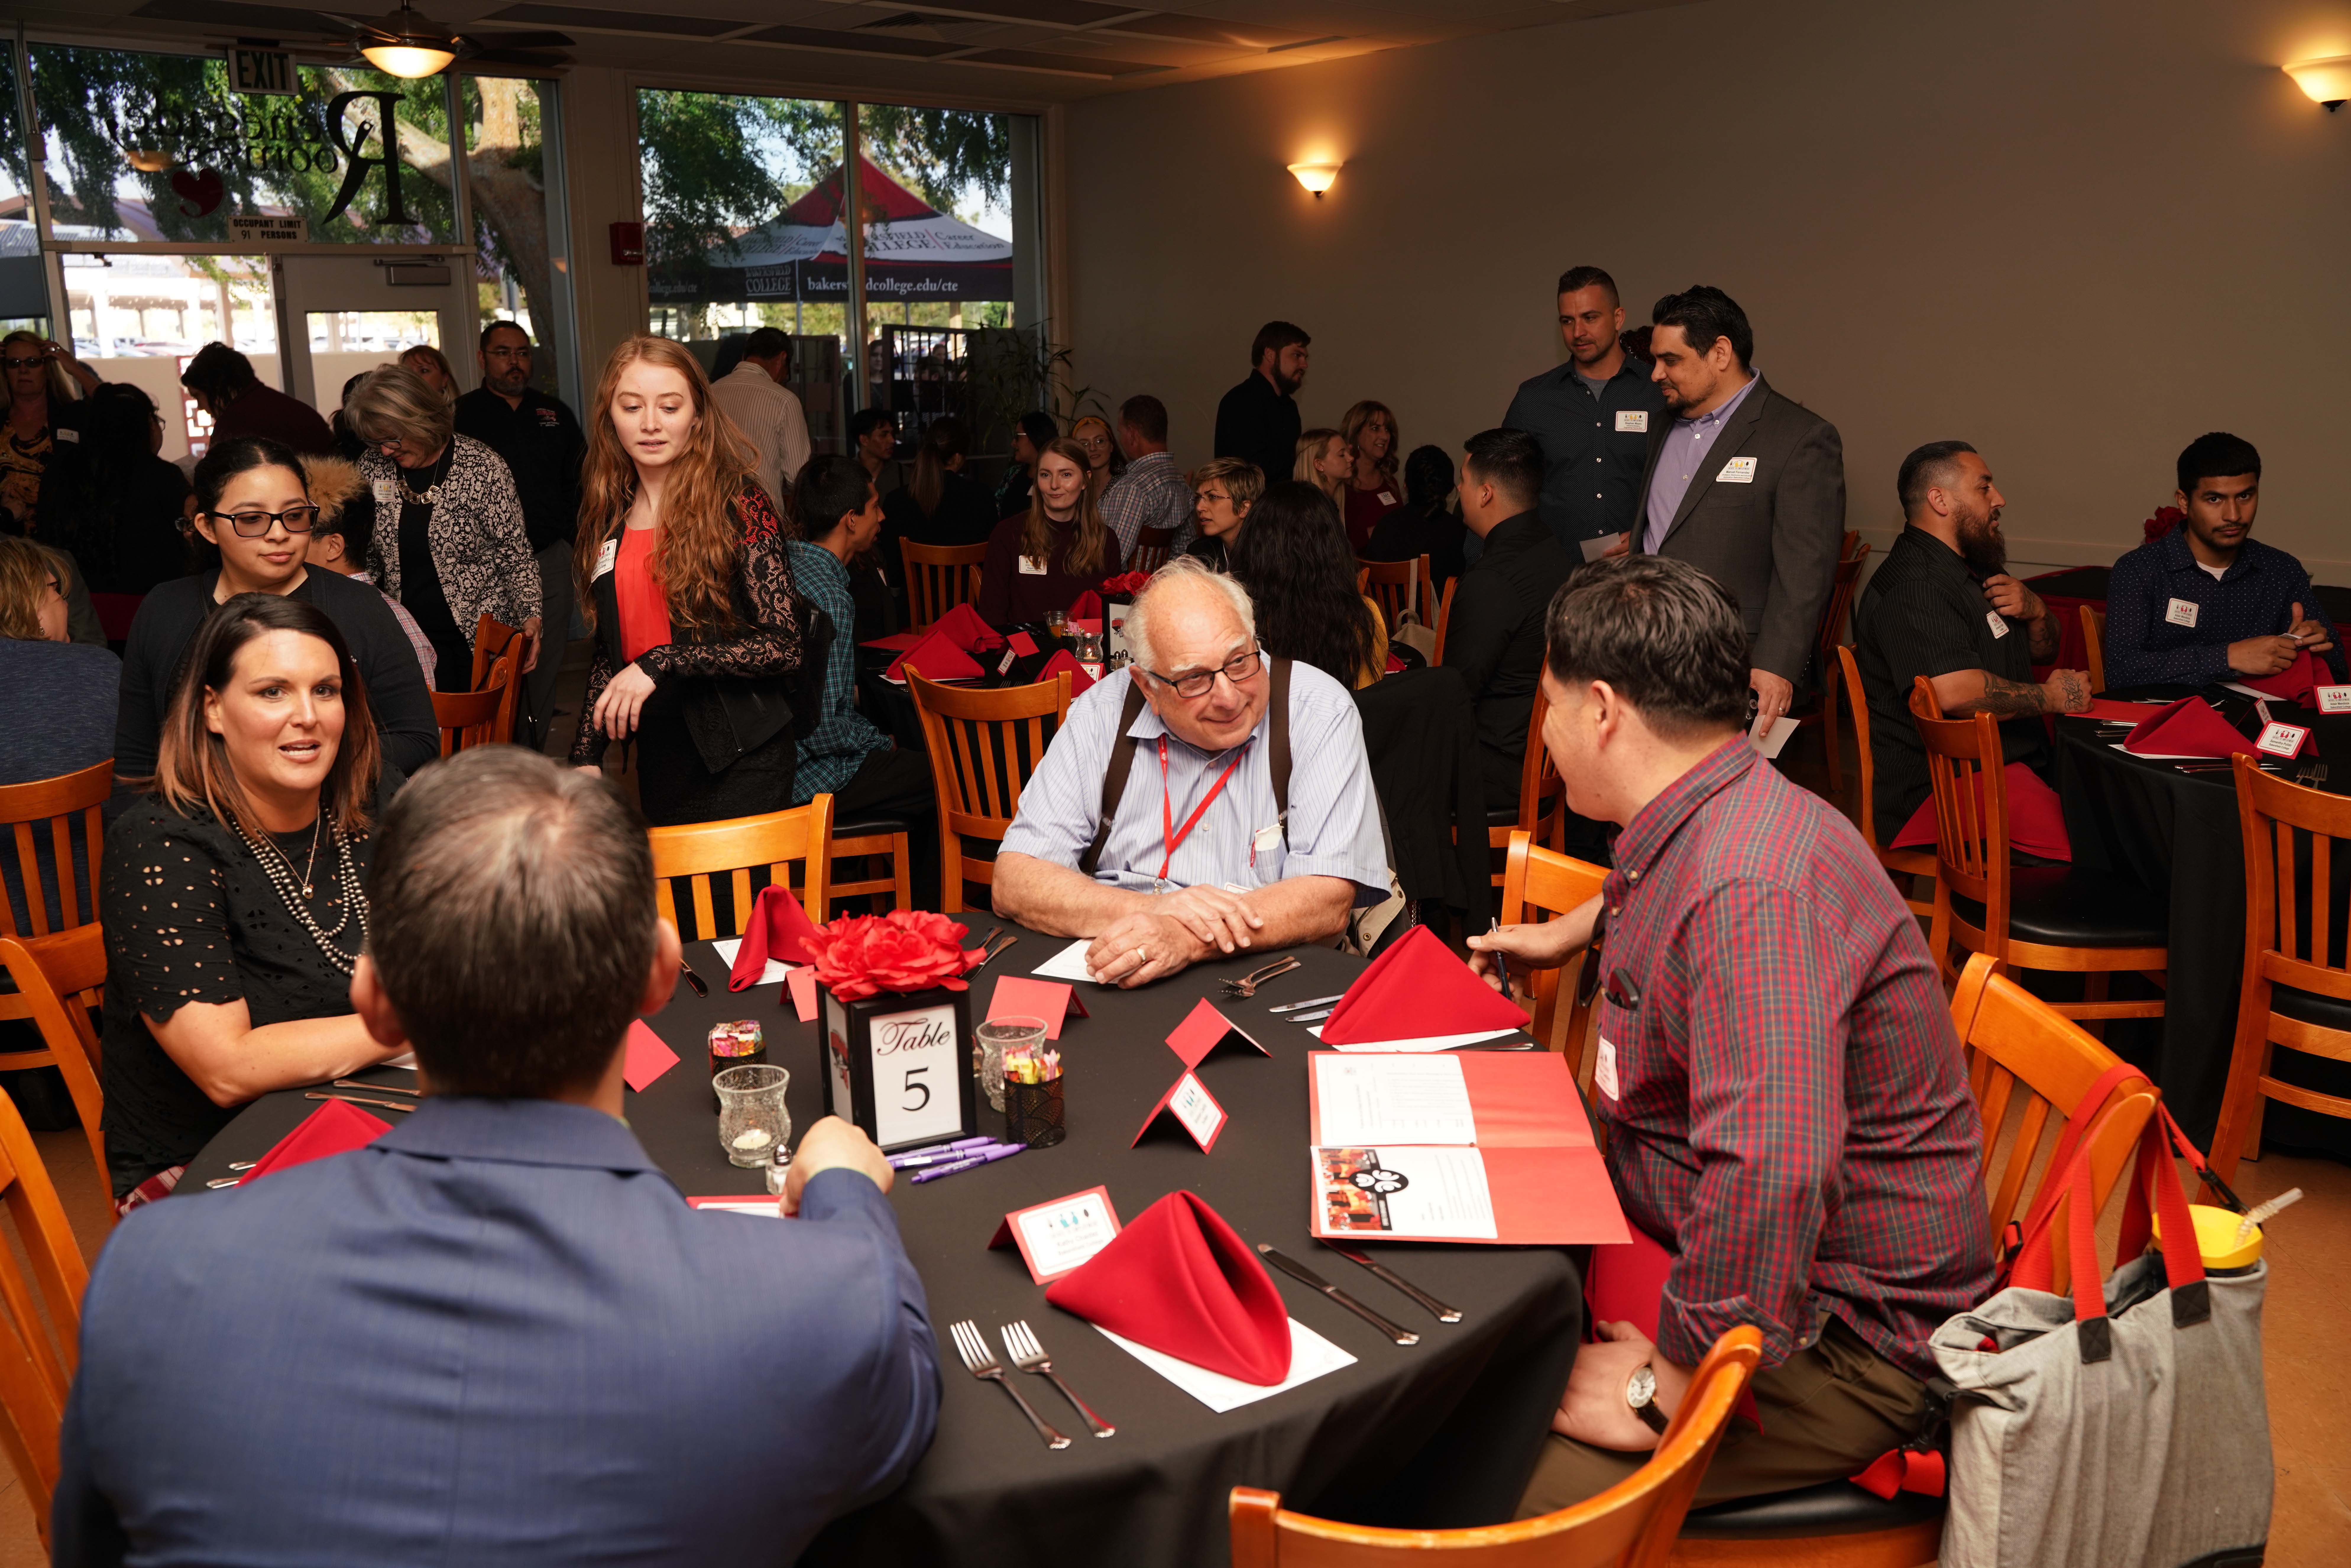 Guests at the dinner table for the Entree to Employment event